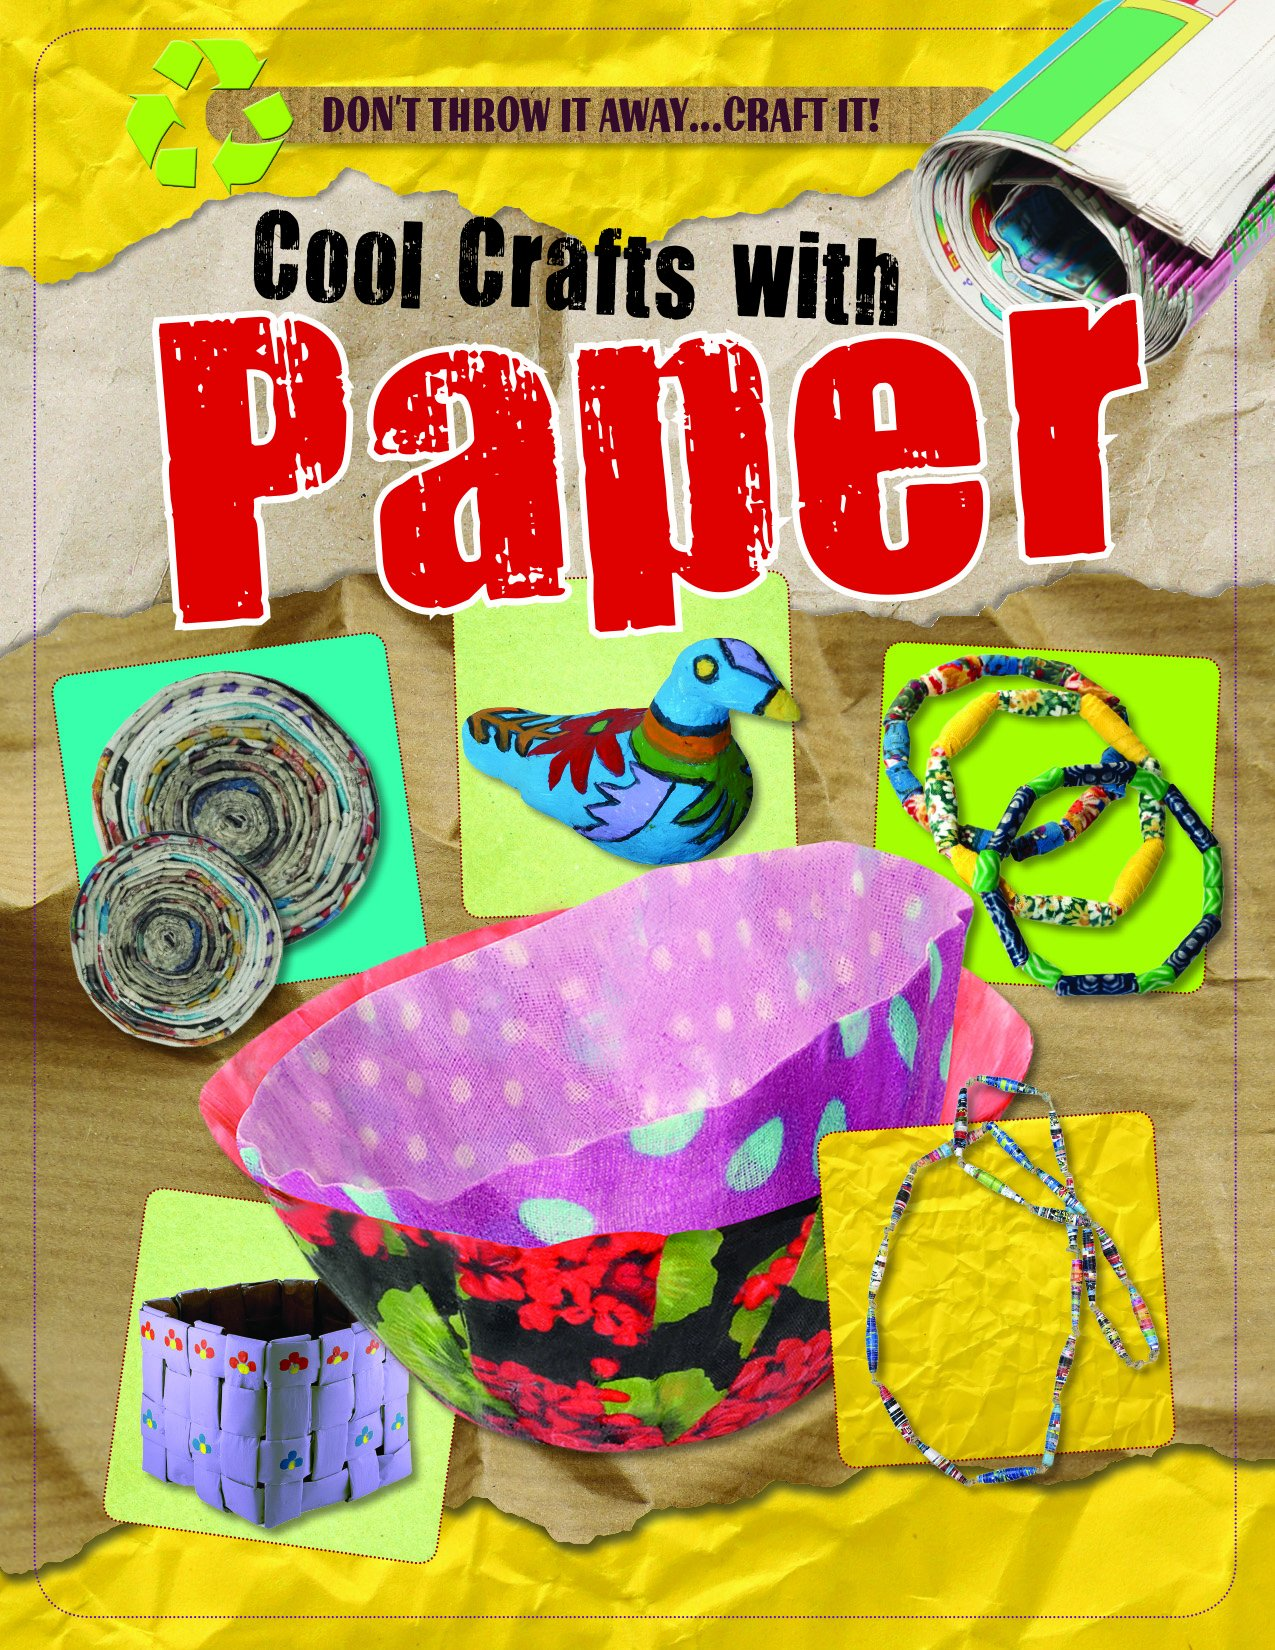 Cool Crafts With Paper (Don't Throw It Away.Craft It!)